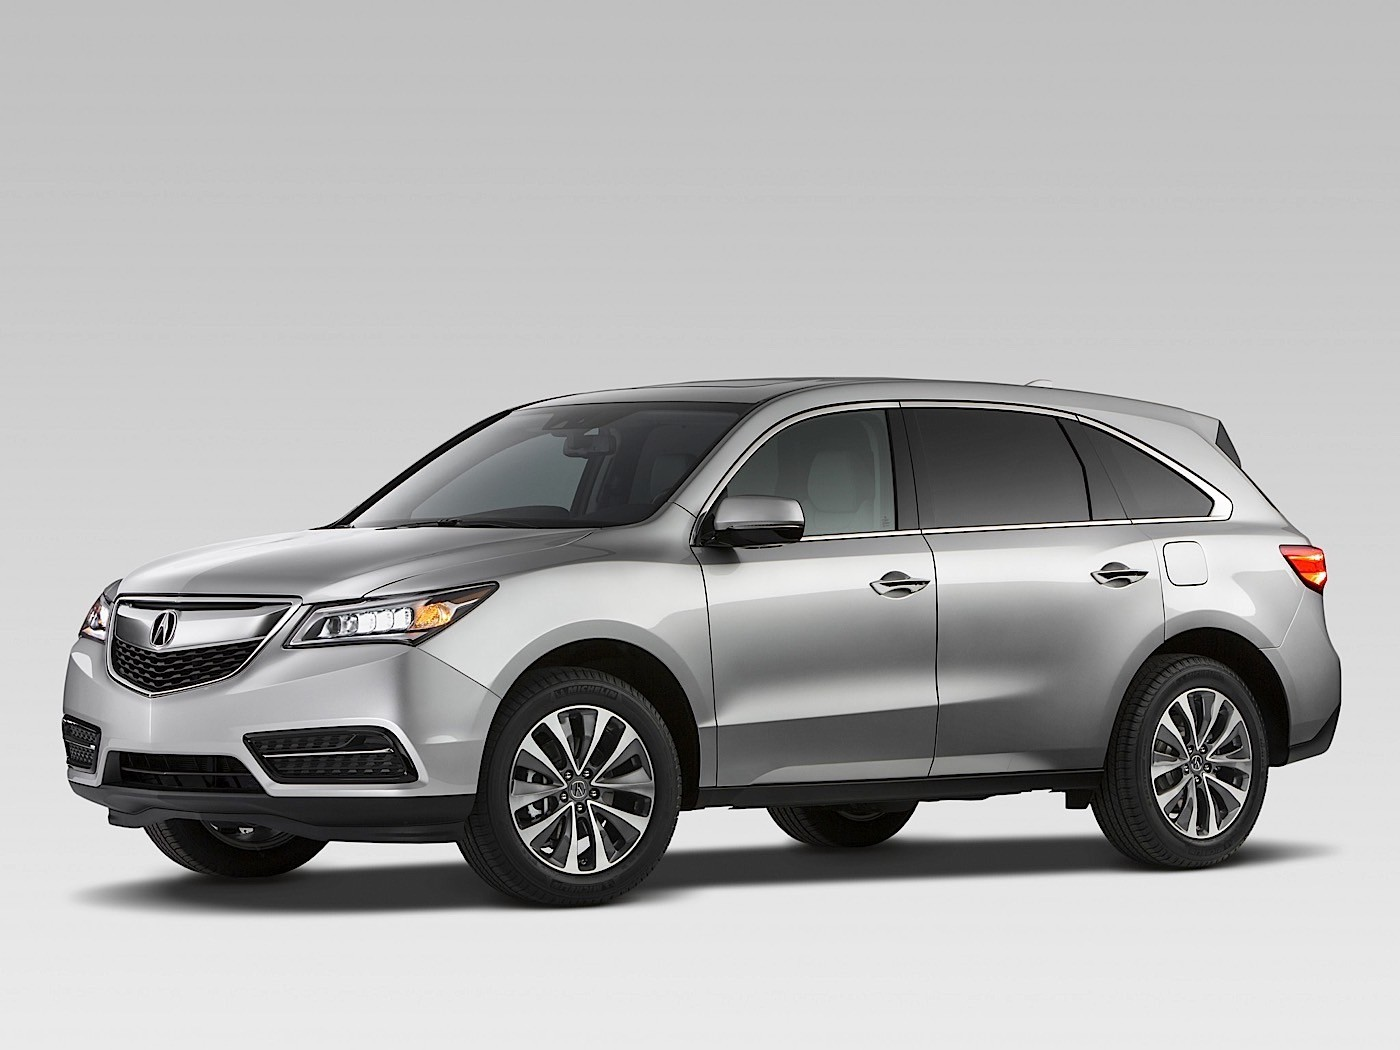 2014 Mdx For Sale >> Top 10 Safest SUVs on the US Market in 2016 - autoevolution